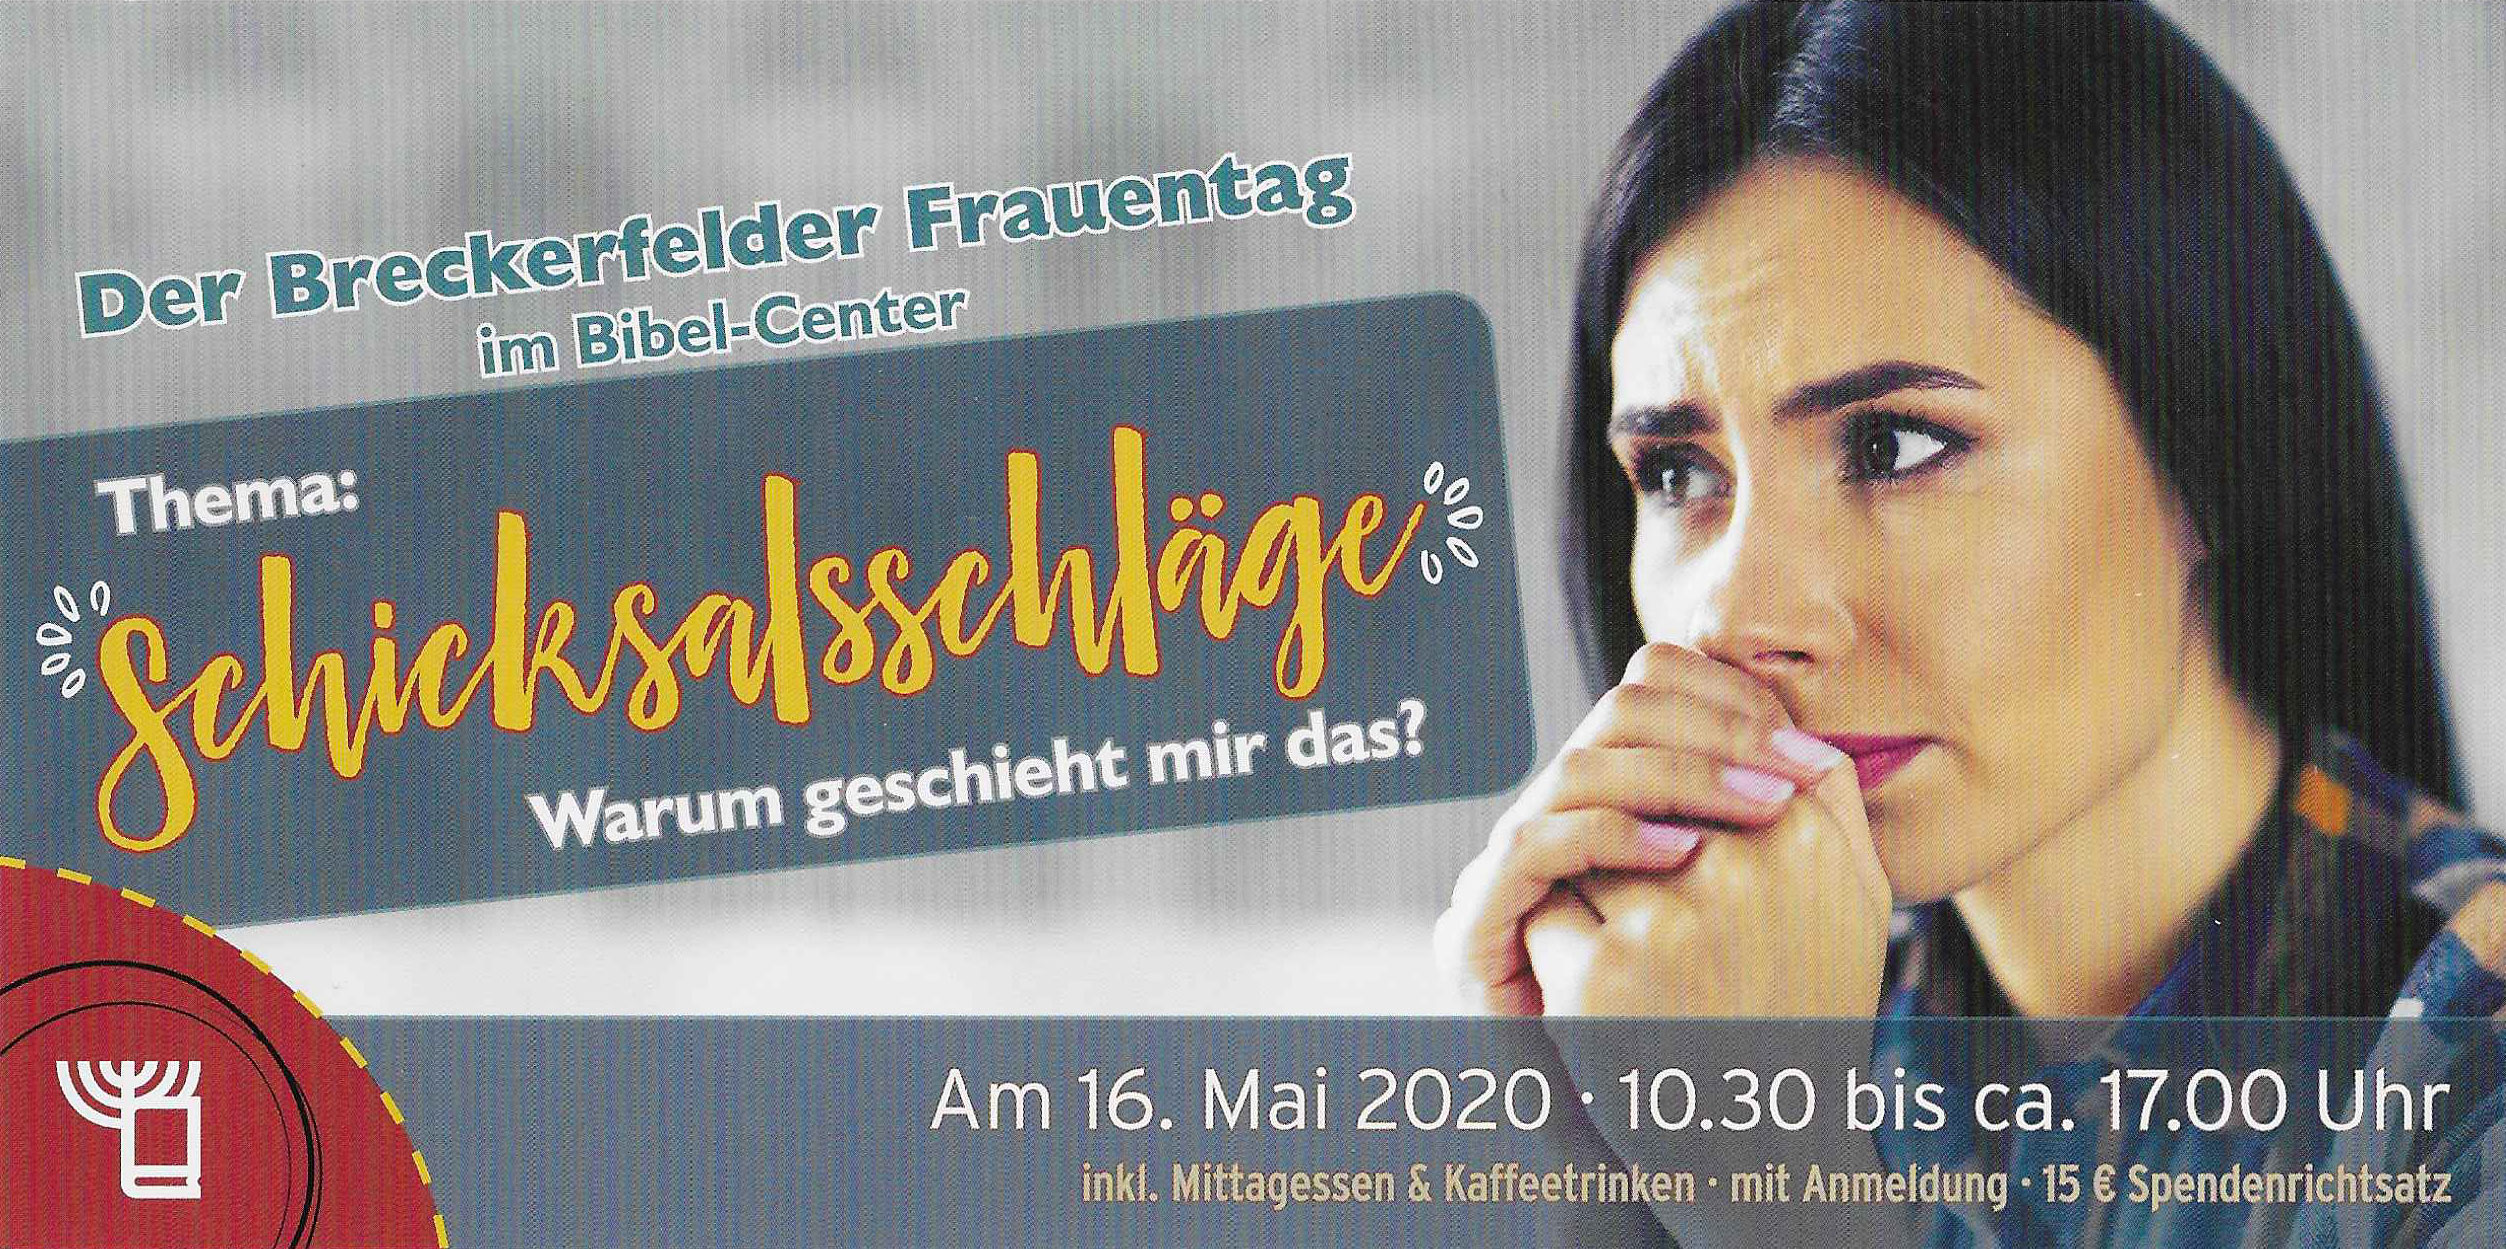 Frauentag im Bibel-Center